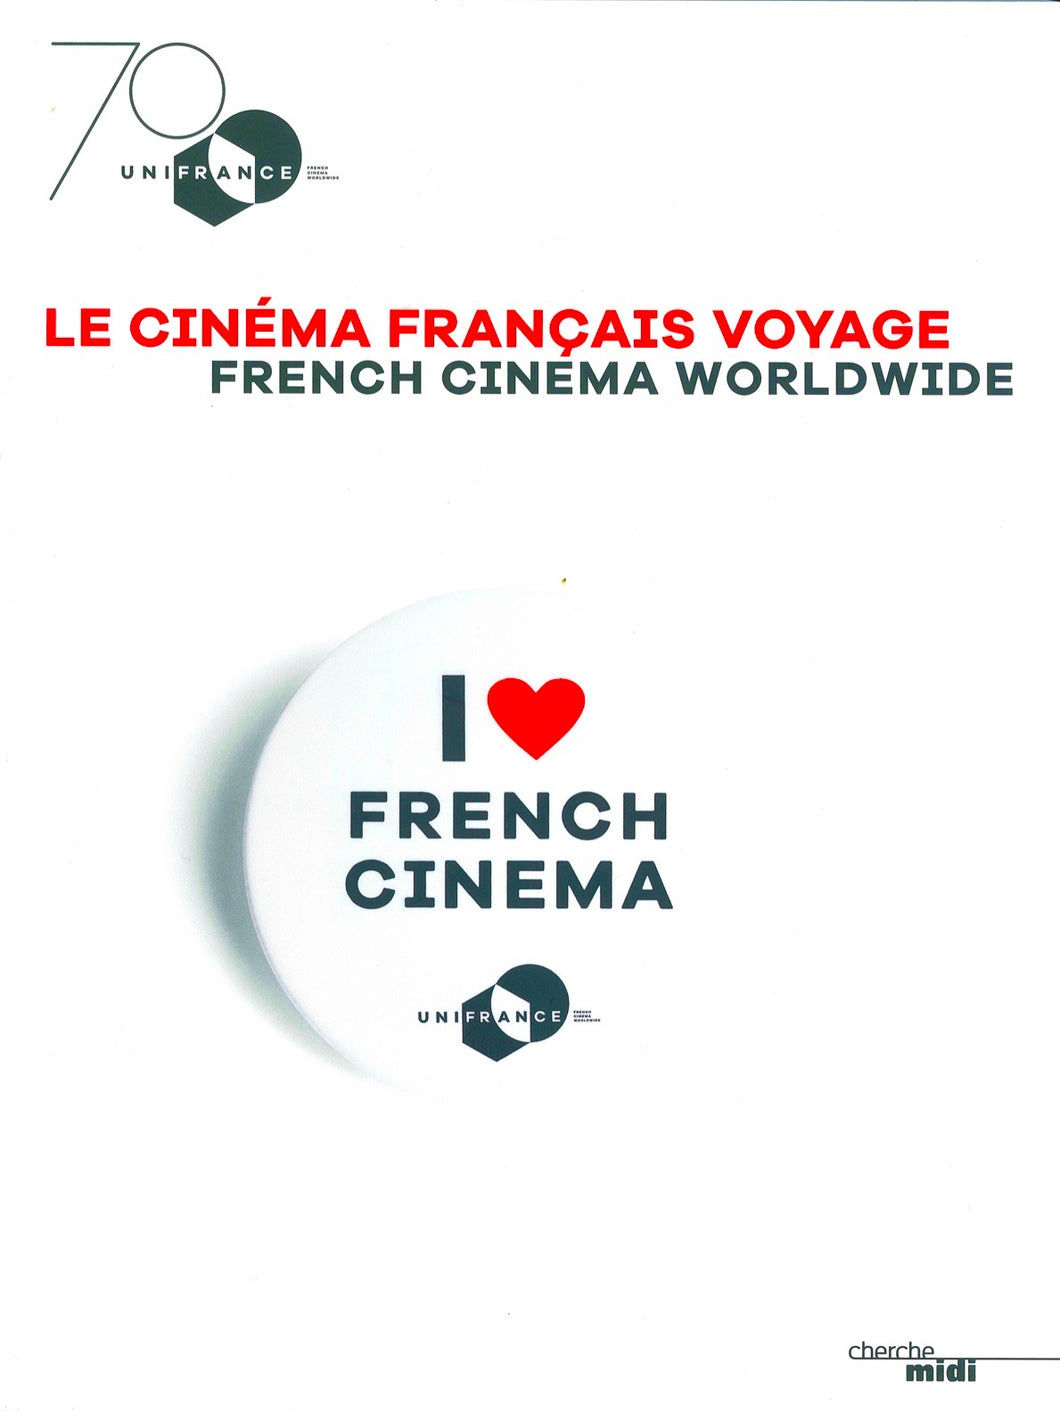 Book French Cinema Worldwide - UniFrance 70th anniversary Frontcover